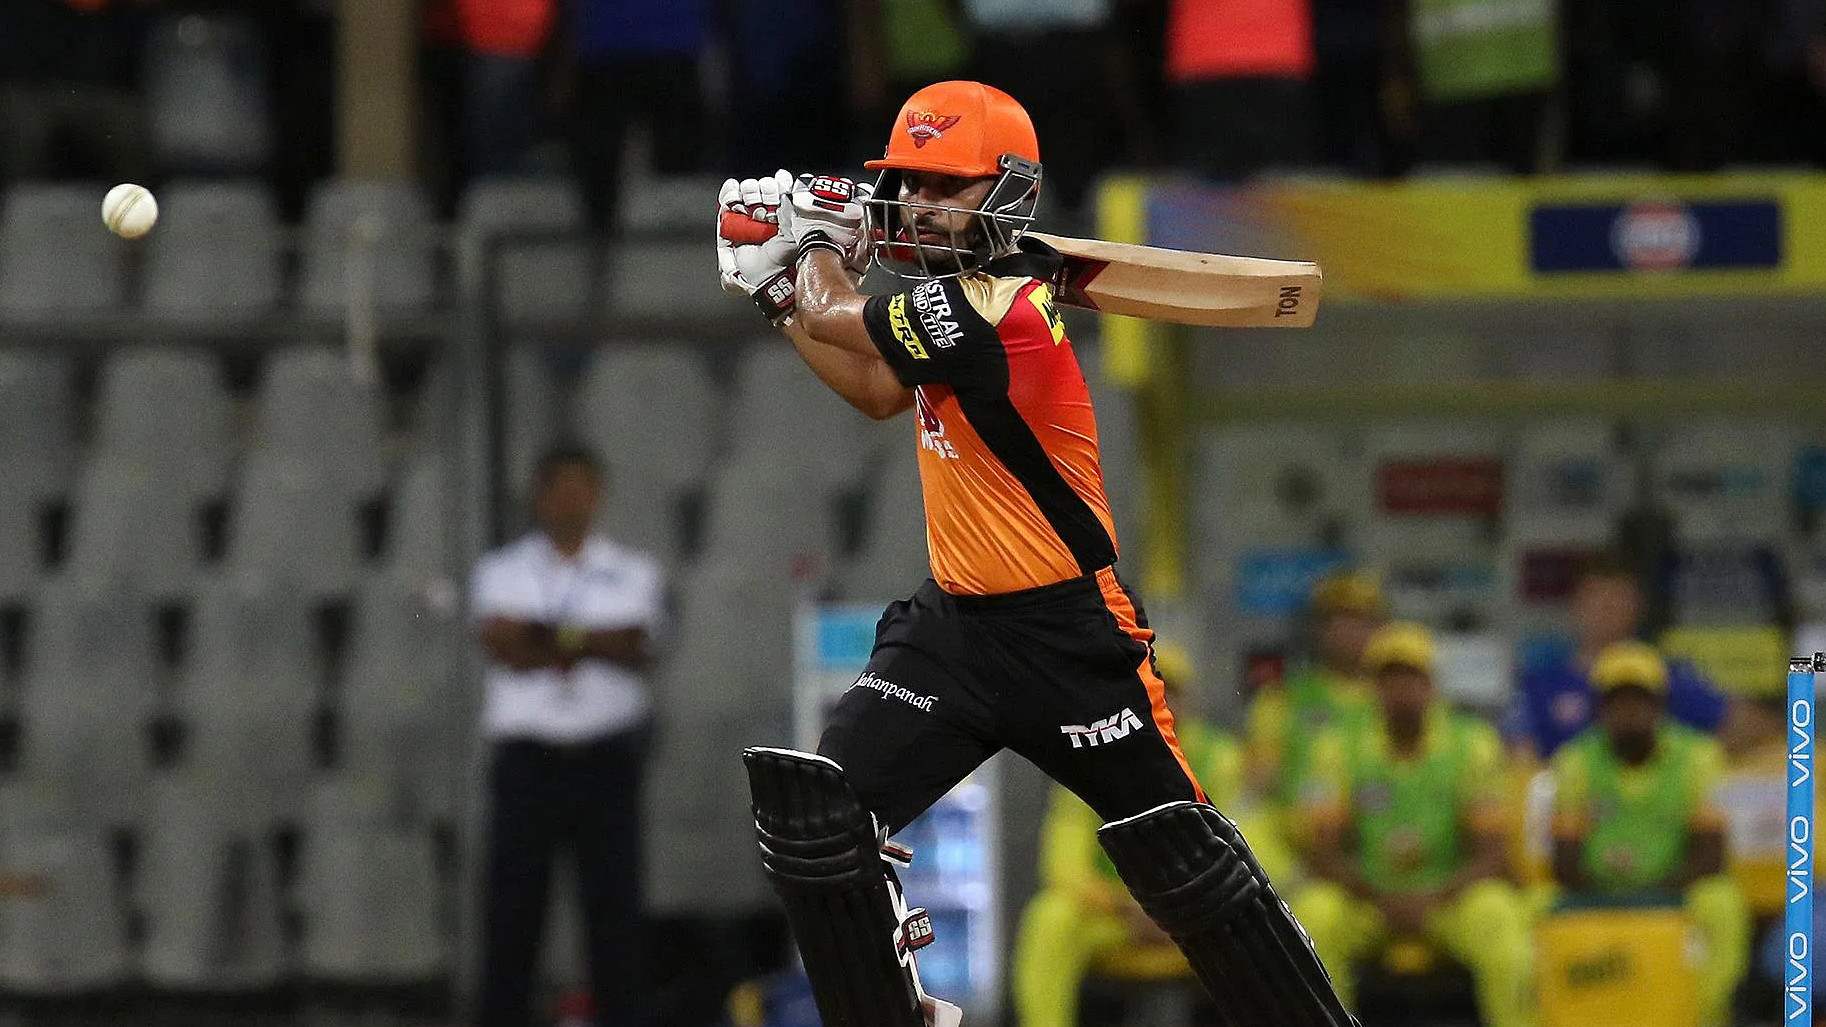 IPL 2021: Sunrisers Hyderabad (SRH) don't need to show off or brag like other teams- Shreevats Goswami